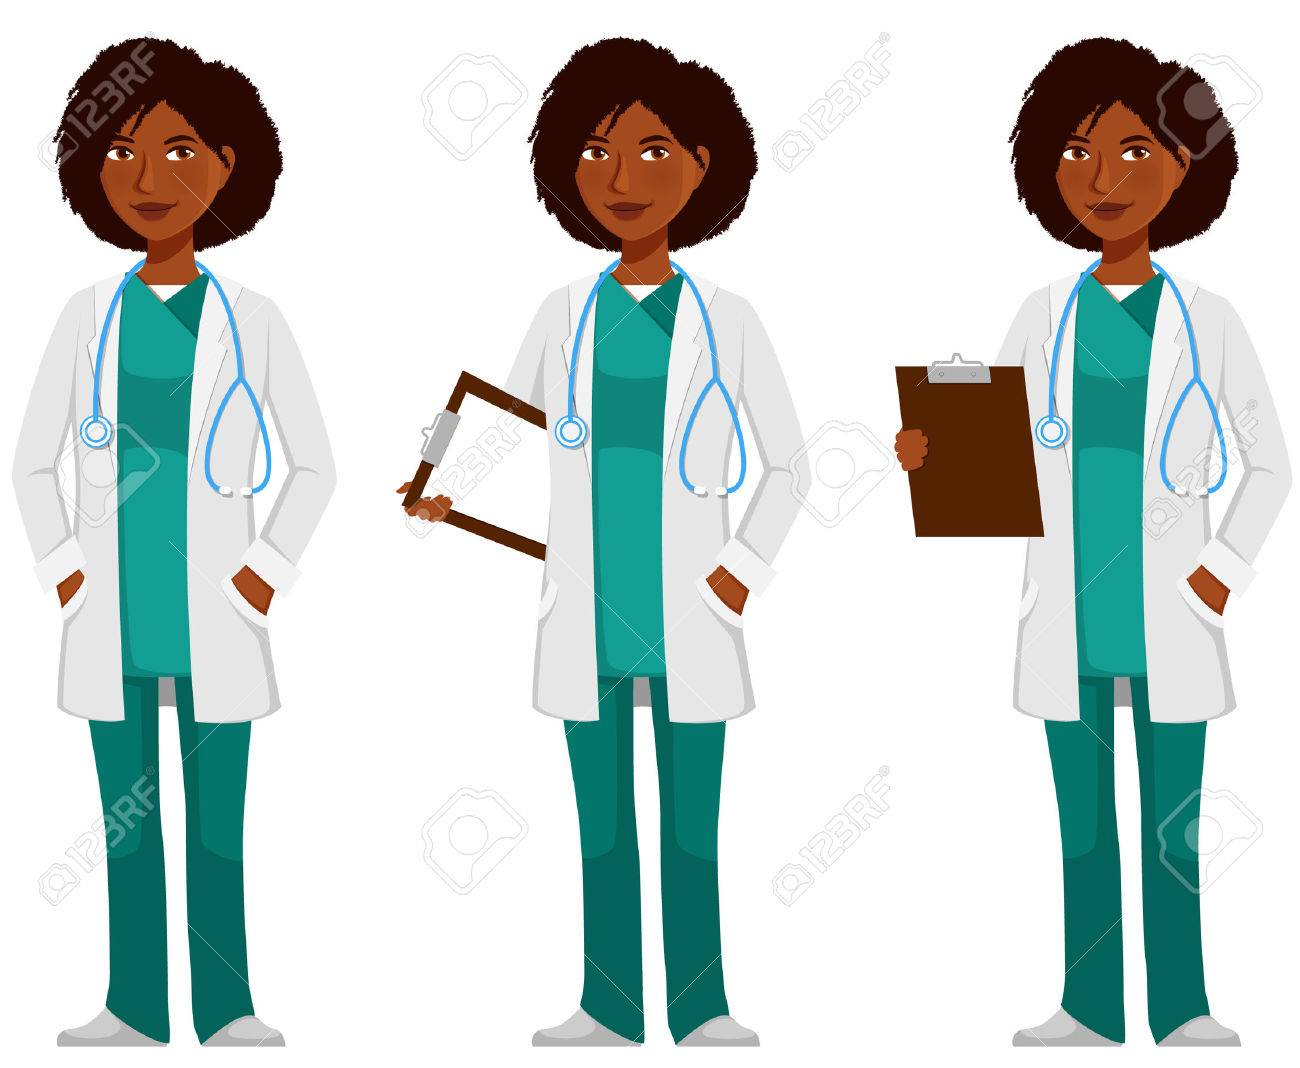 cartoon illustration of an African American doctor - 68811149